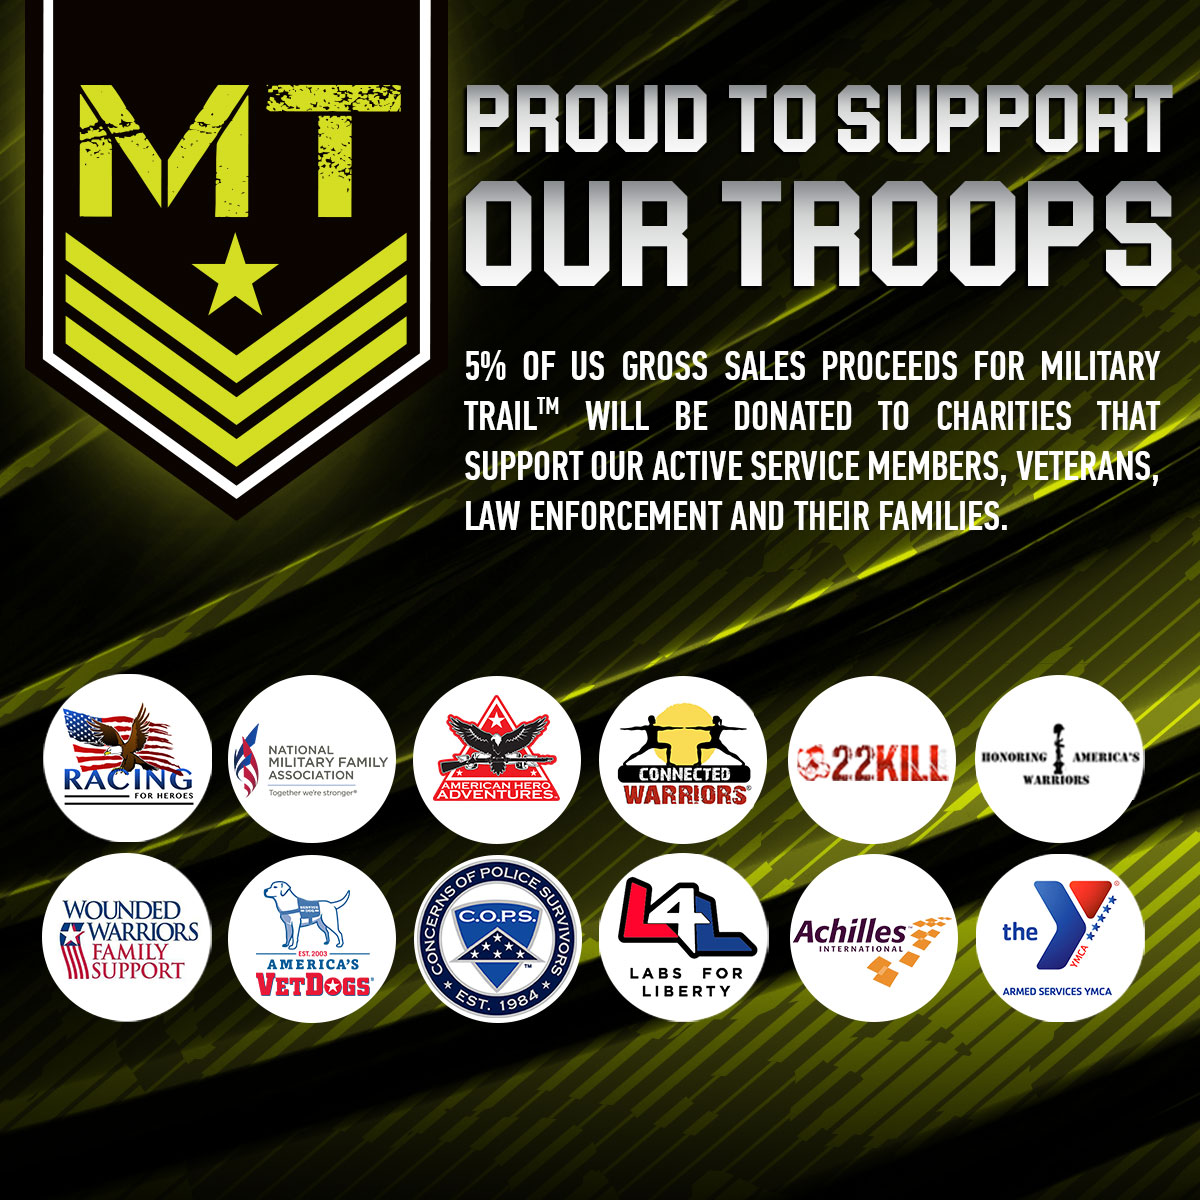 Military Trail Donates to Charities Supporting Active Service Members, Veterans & Their Families